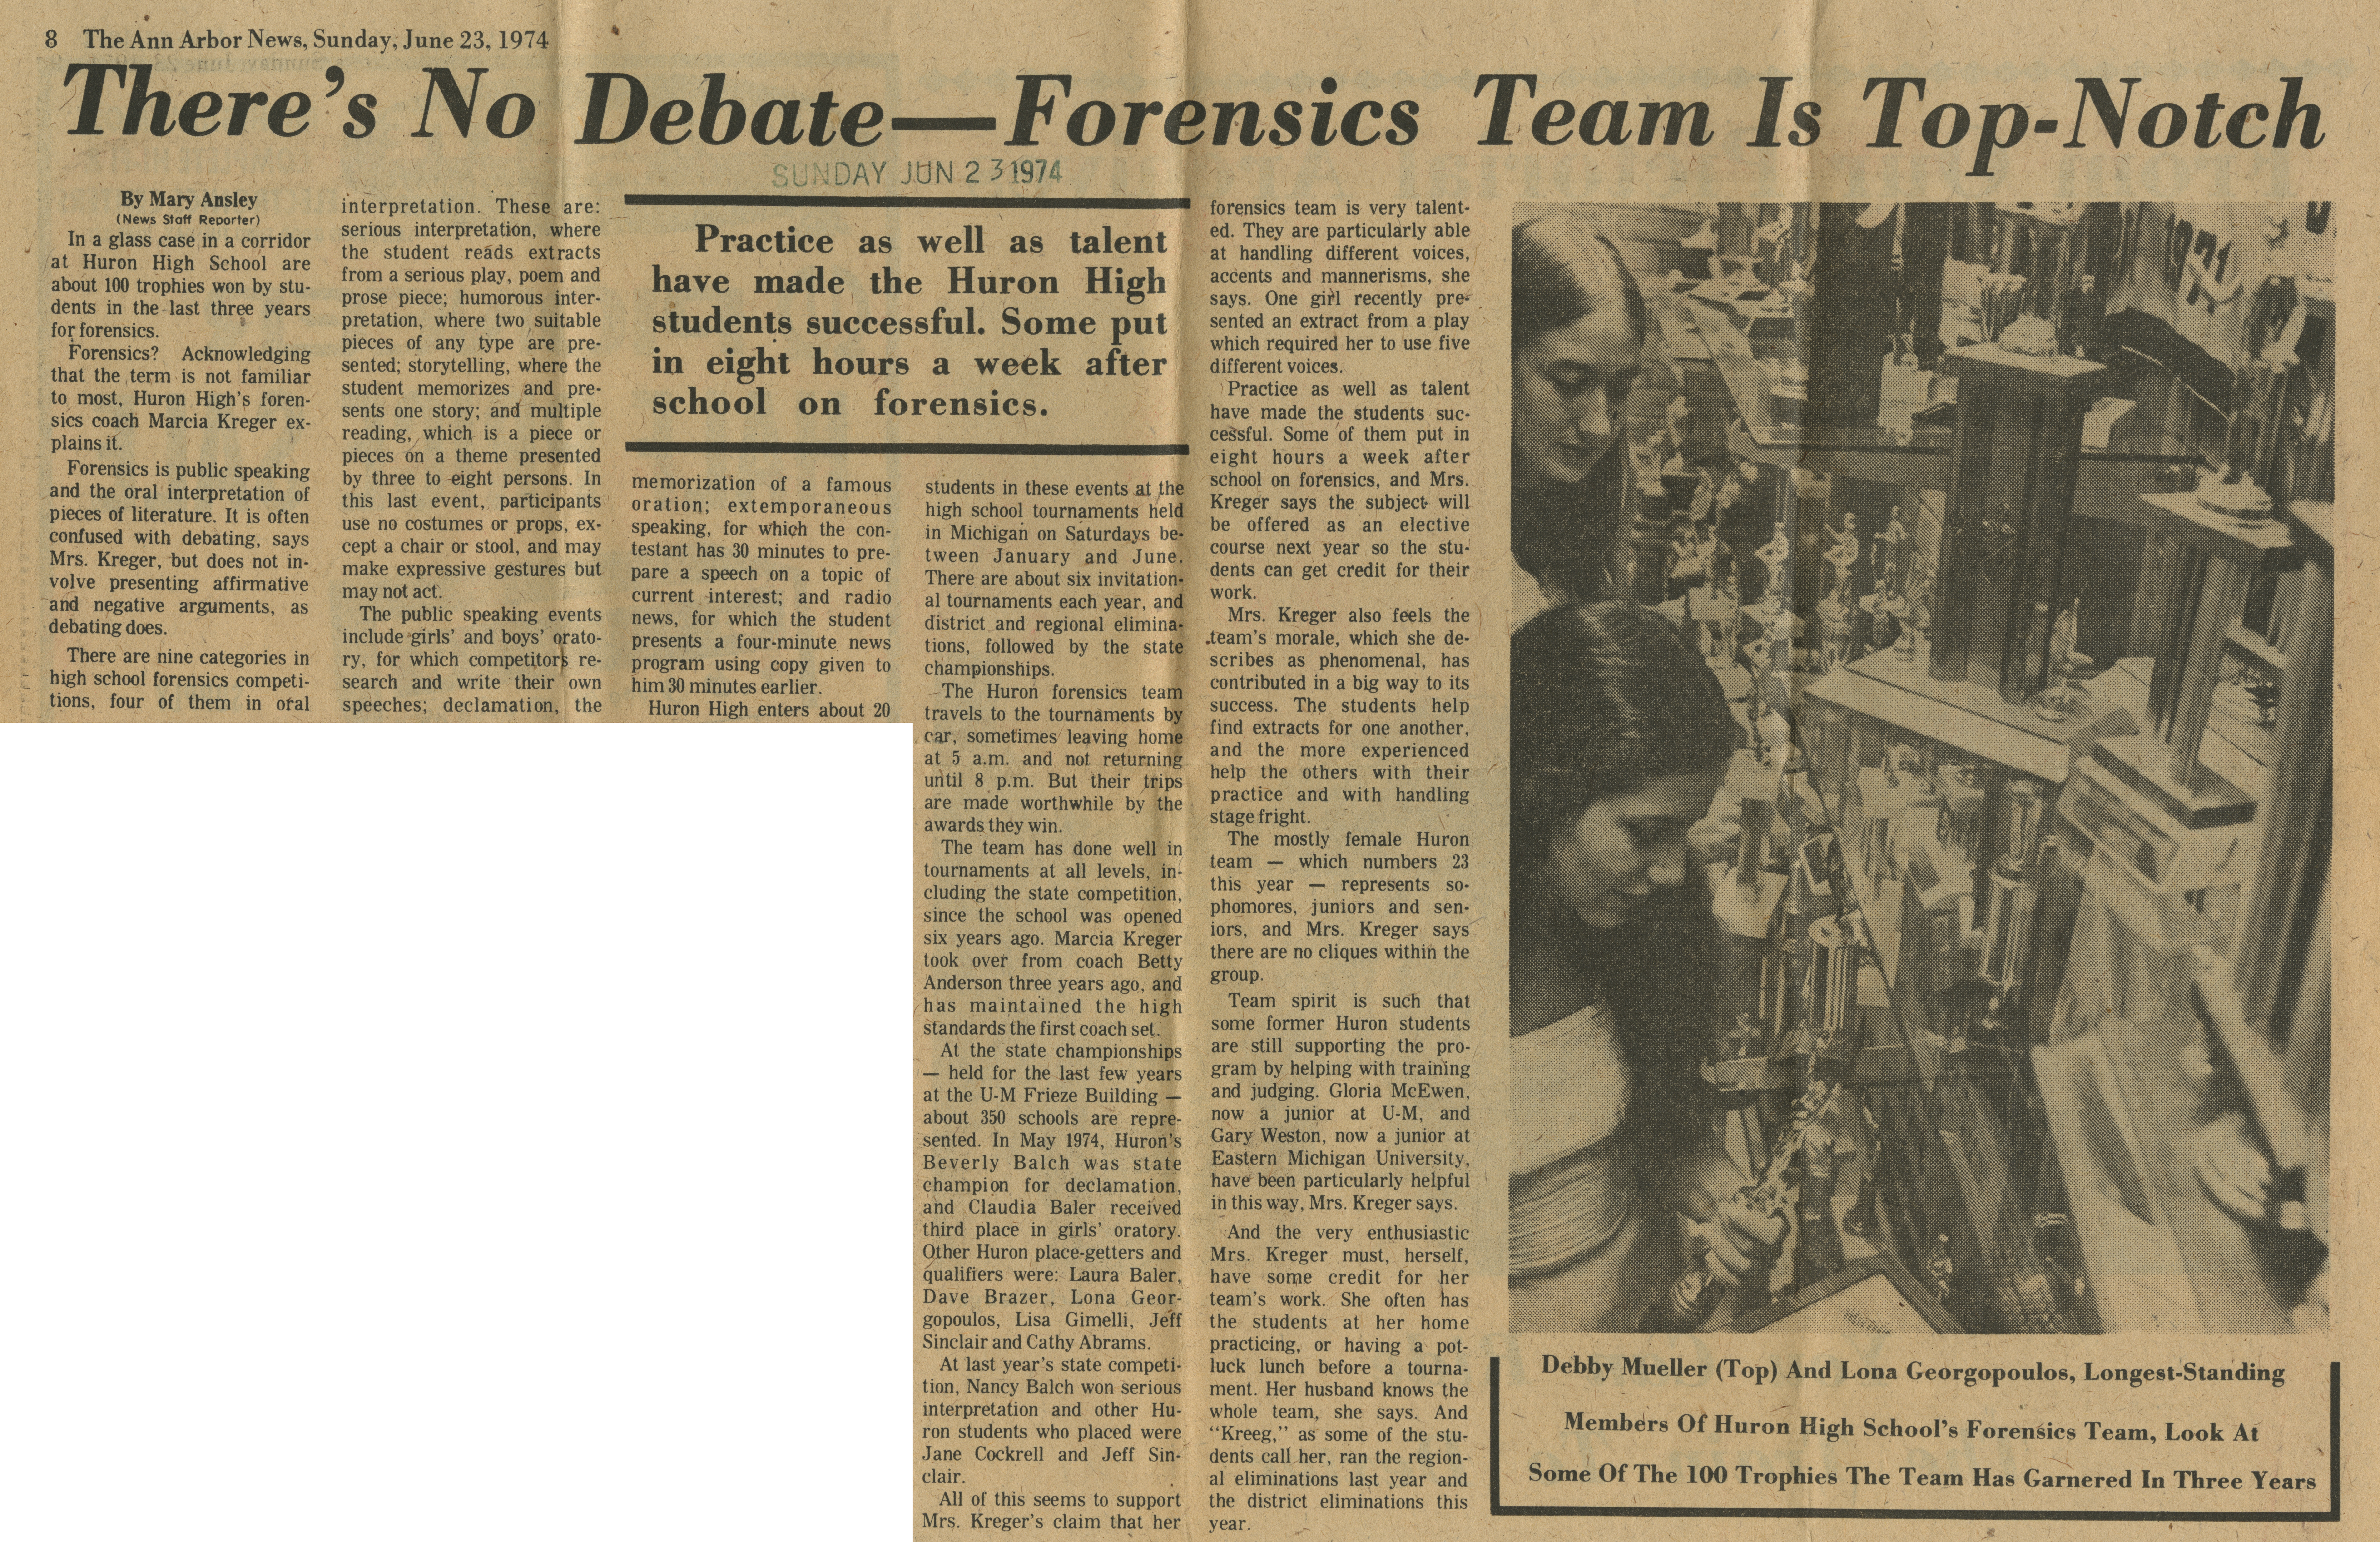 There's No Debate--Forensics Team Is Top-Notch image